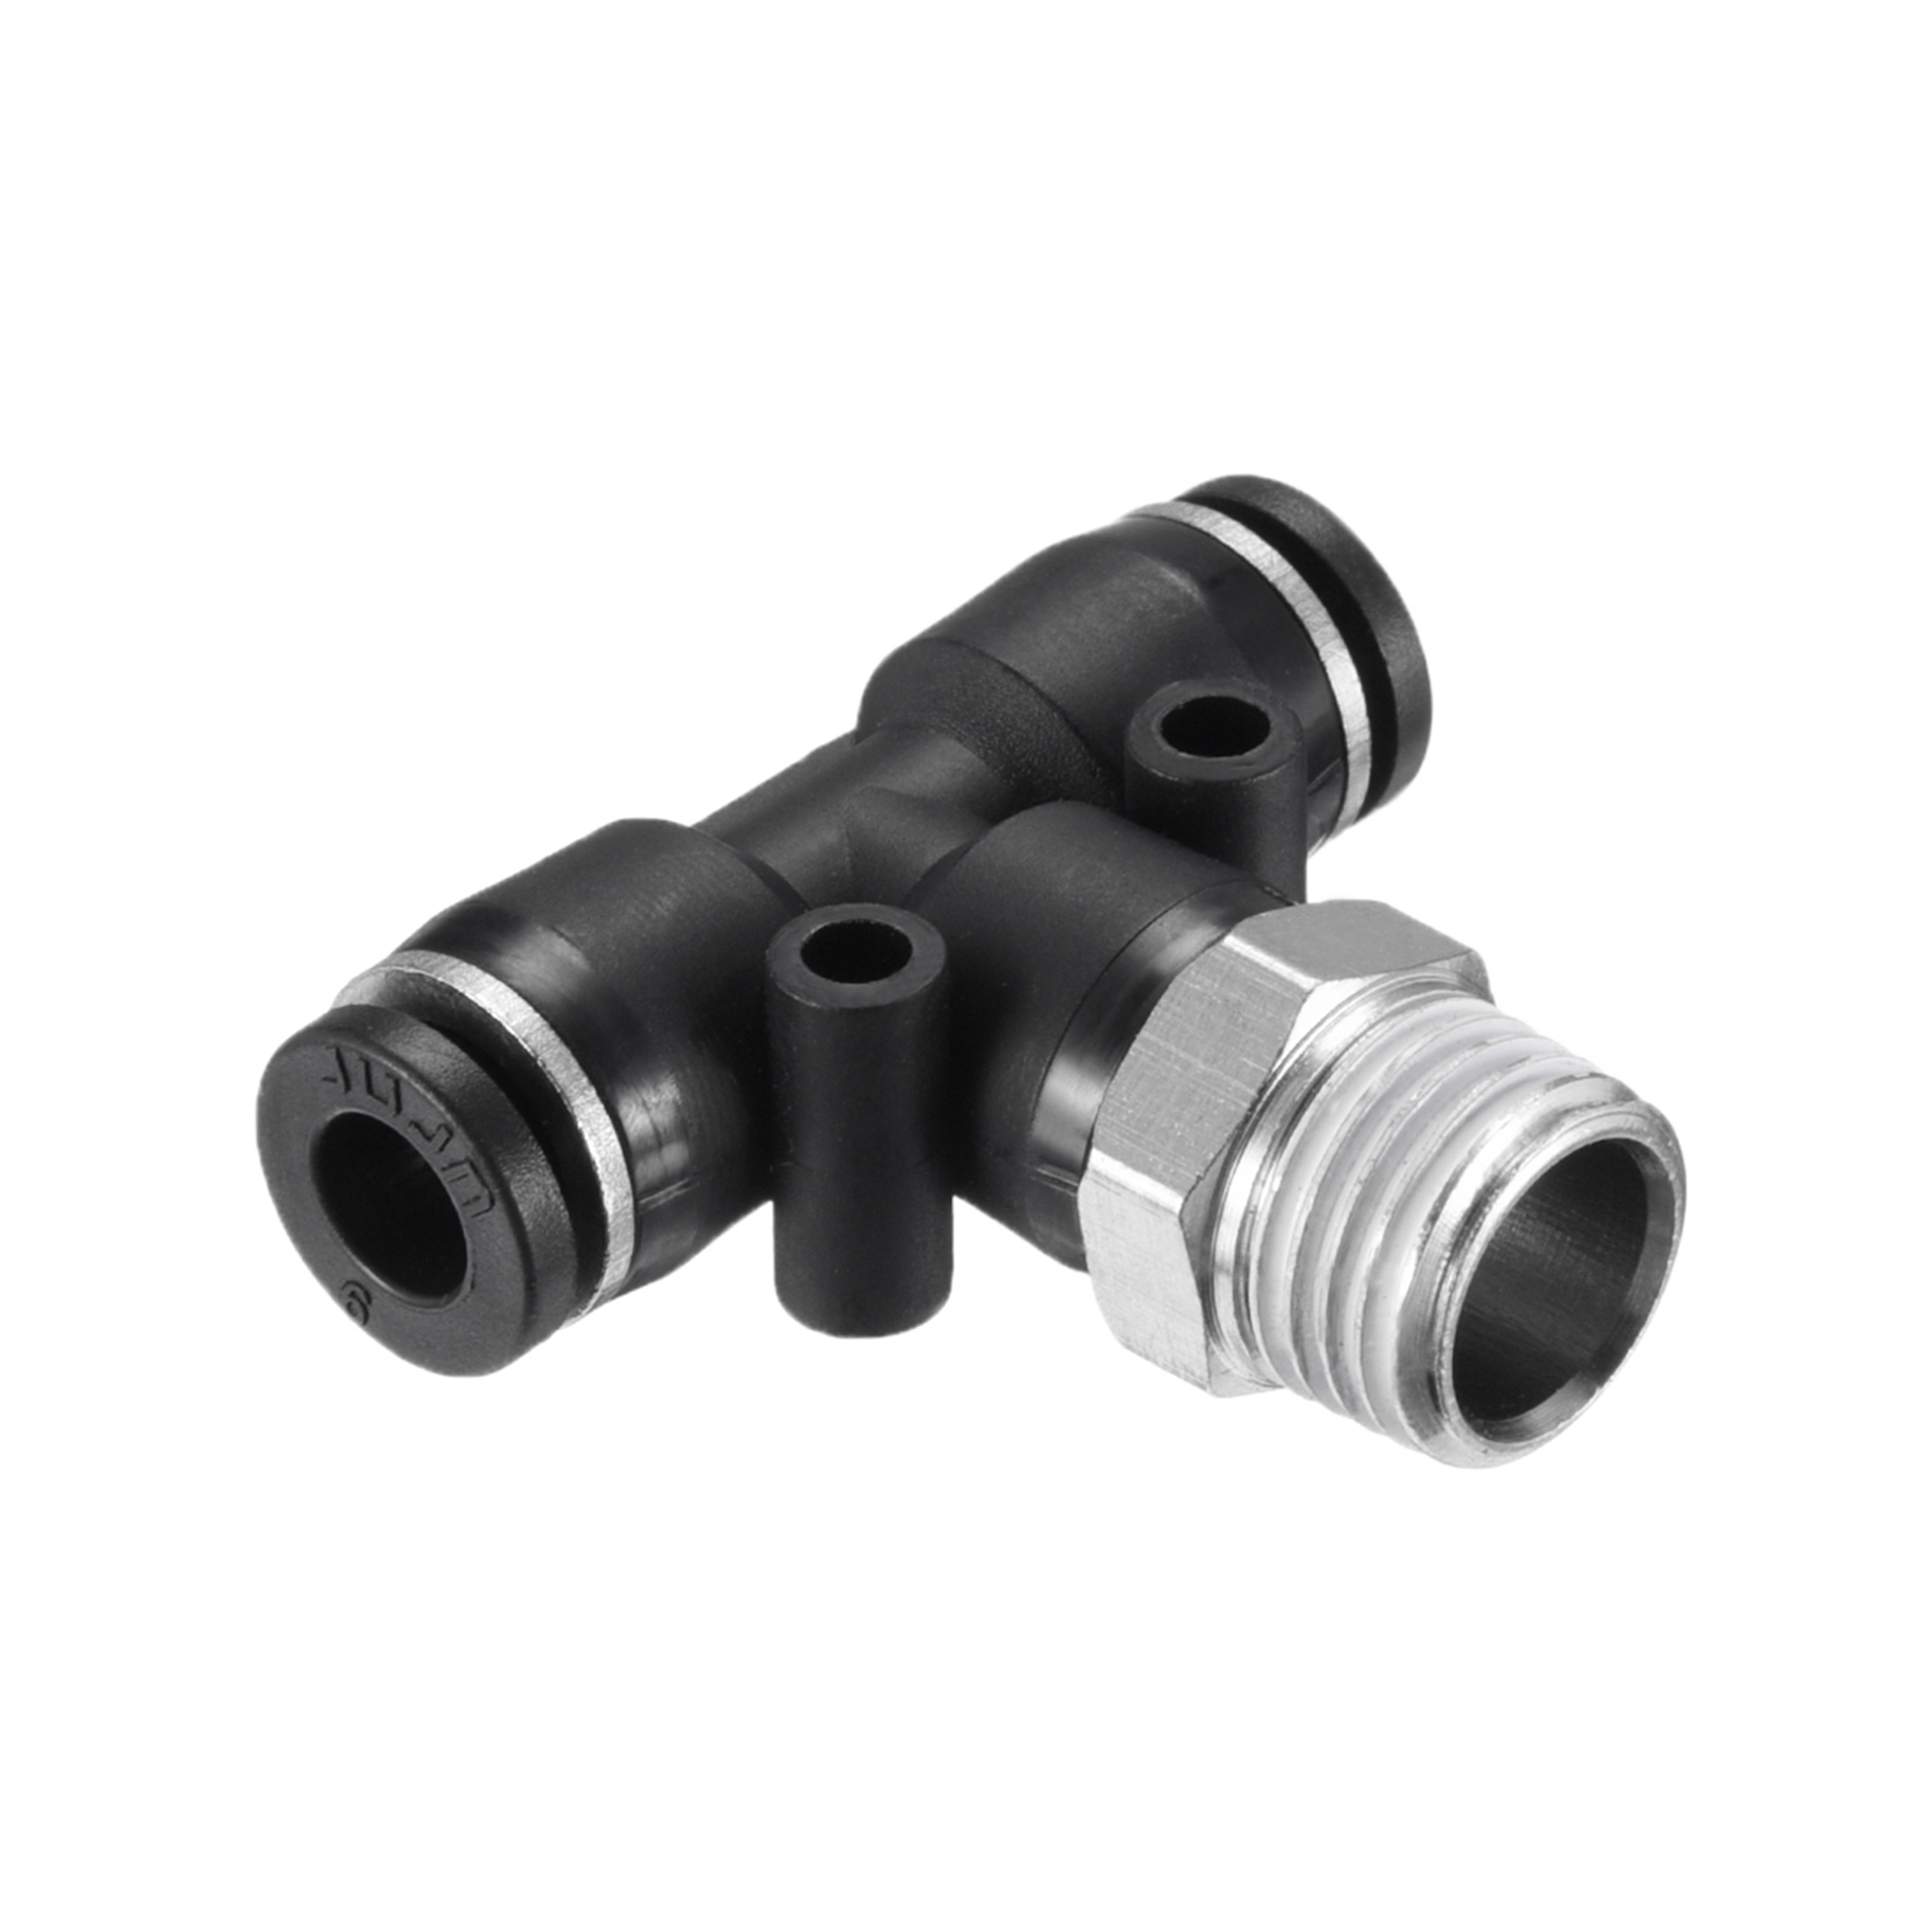 "Push To Connect Fittings T Type Thread Tee Tube Connect 15/64"" OD x 1/4"" G Male Thread Push Fit Fittings Tube Fittings P - image 4 de 4"